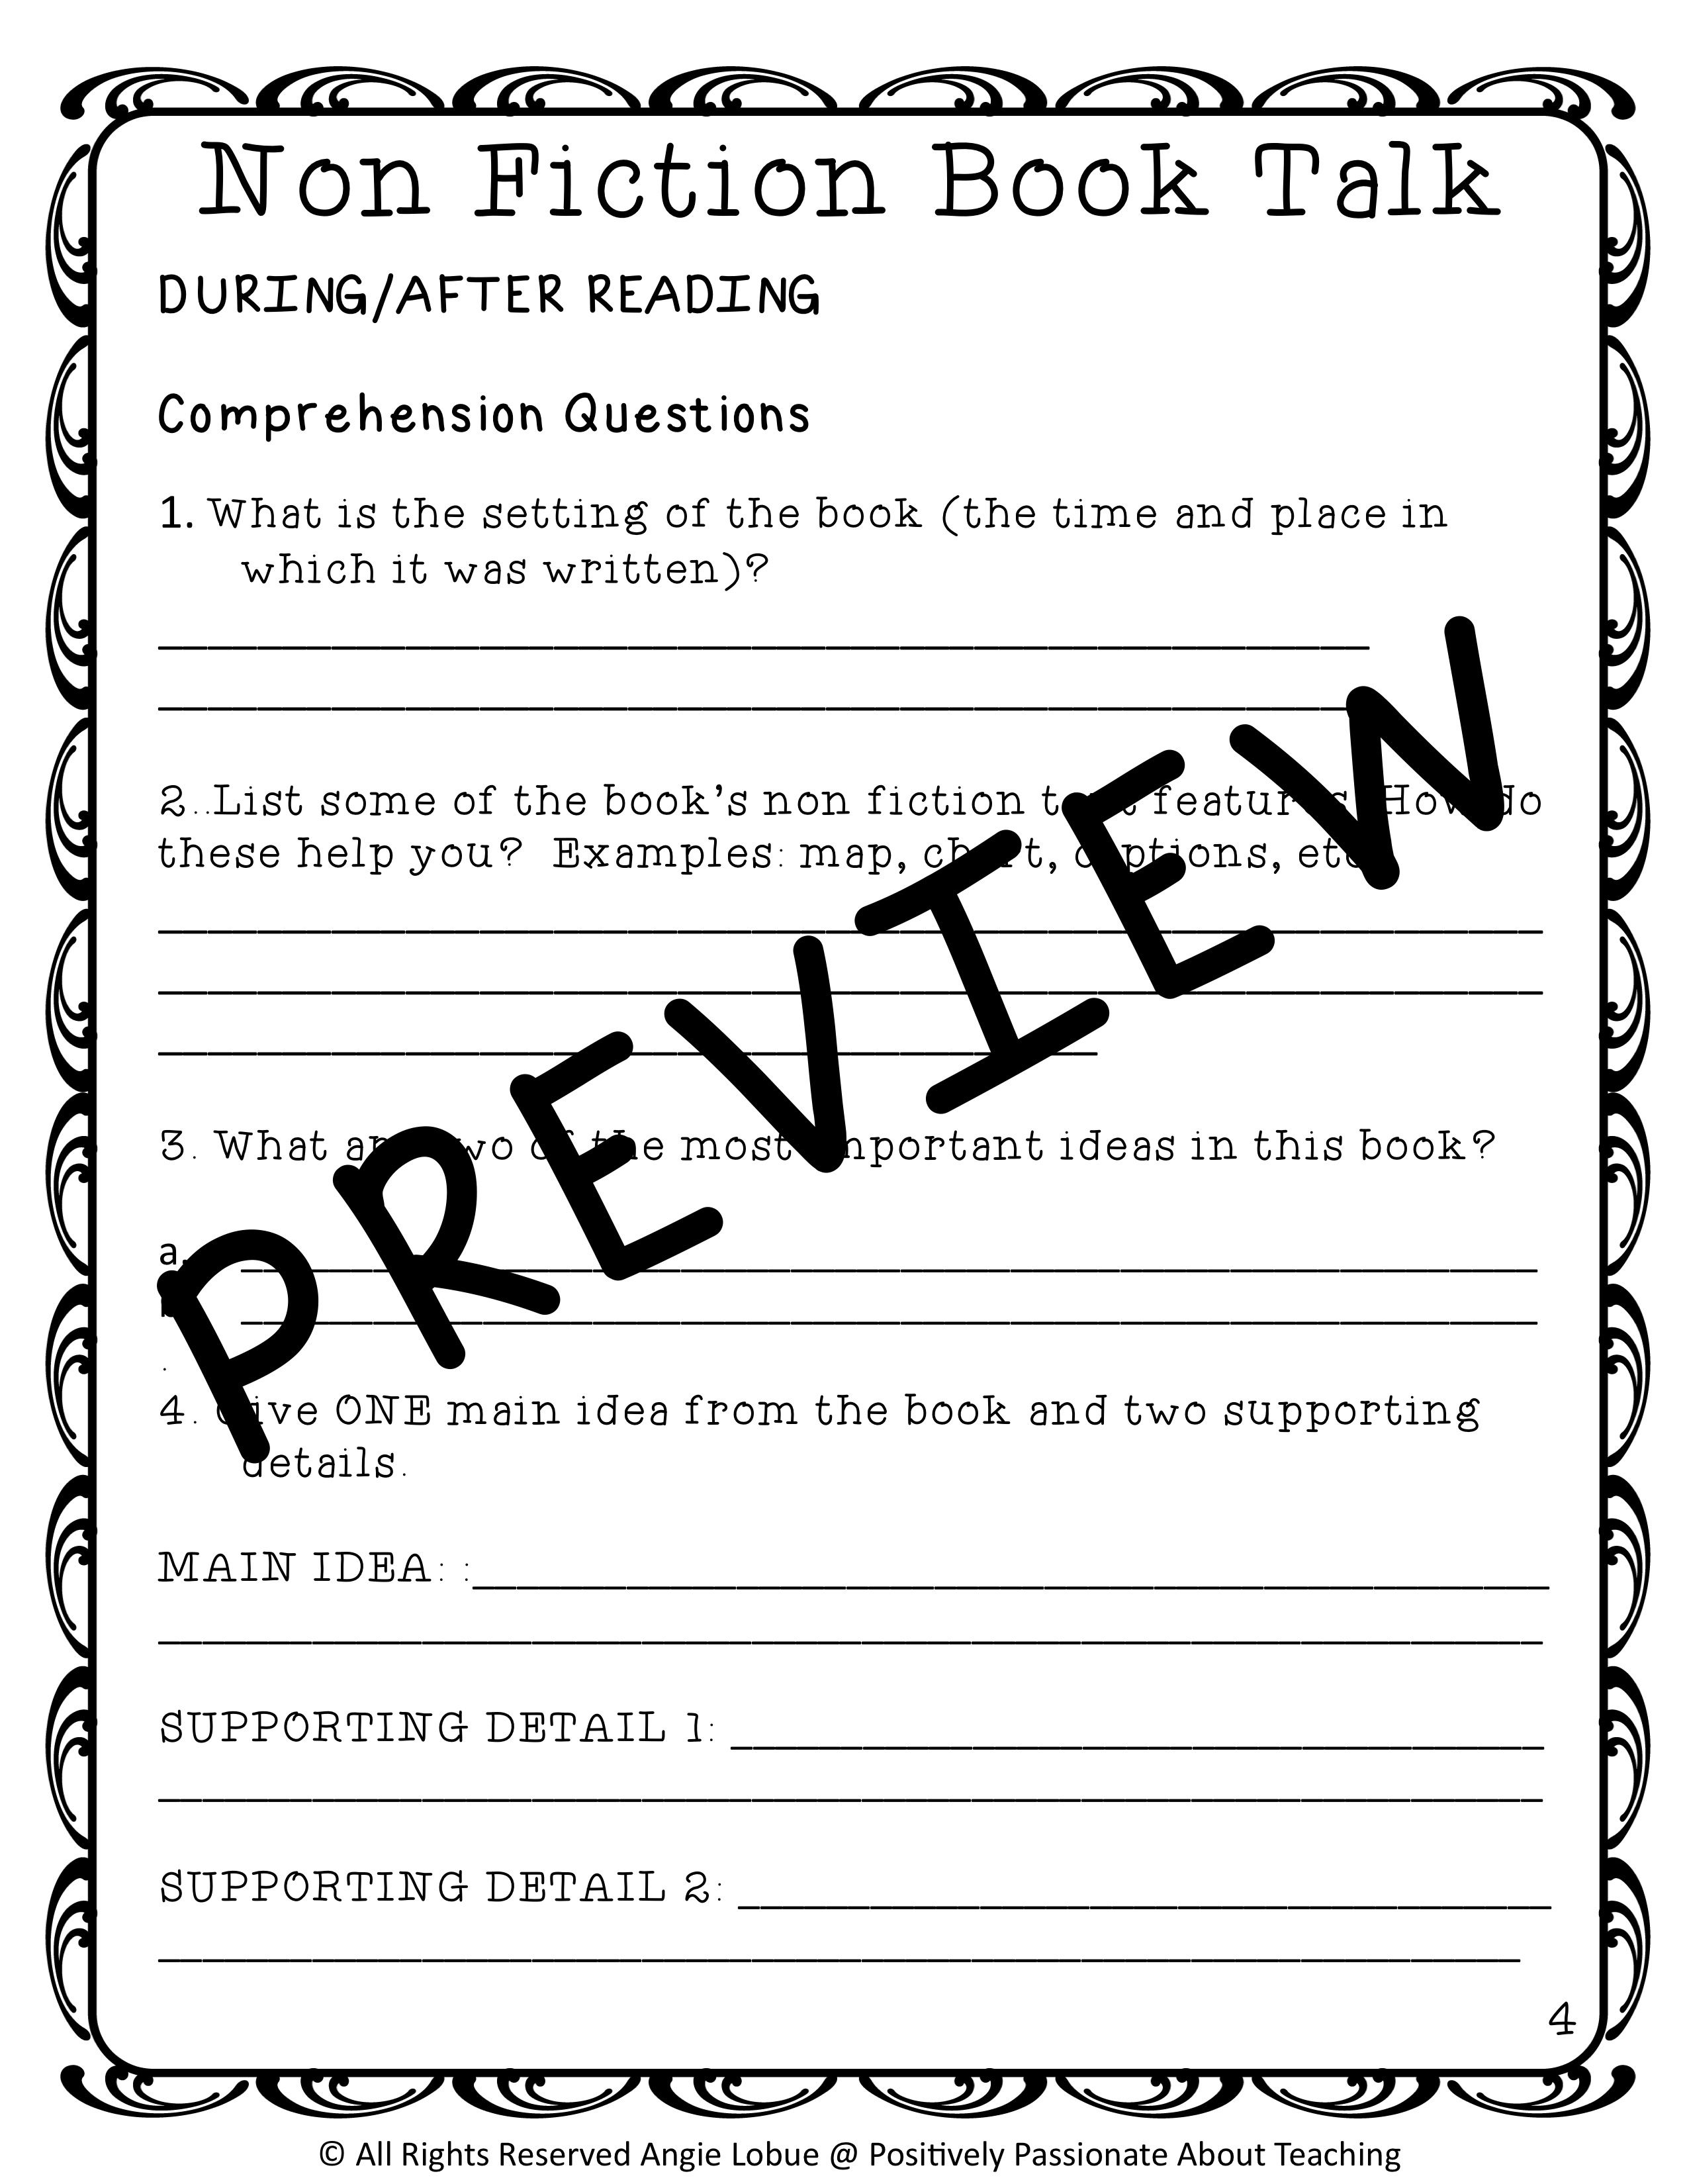 Book Talk Comprehension Questions Amp Vocabulary For Any Non Fiction Book